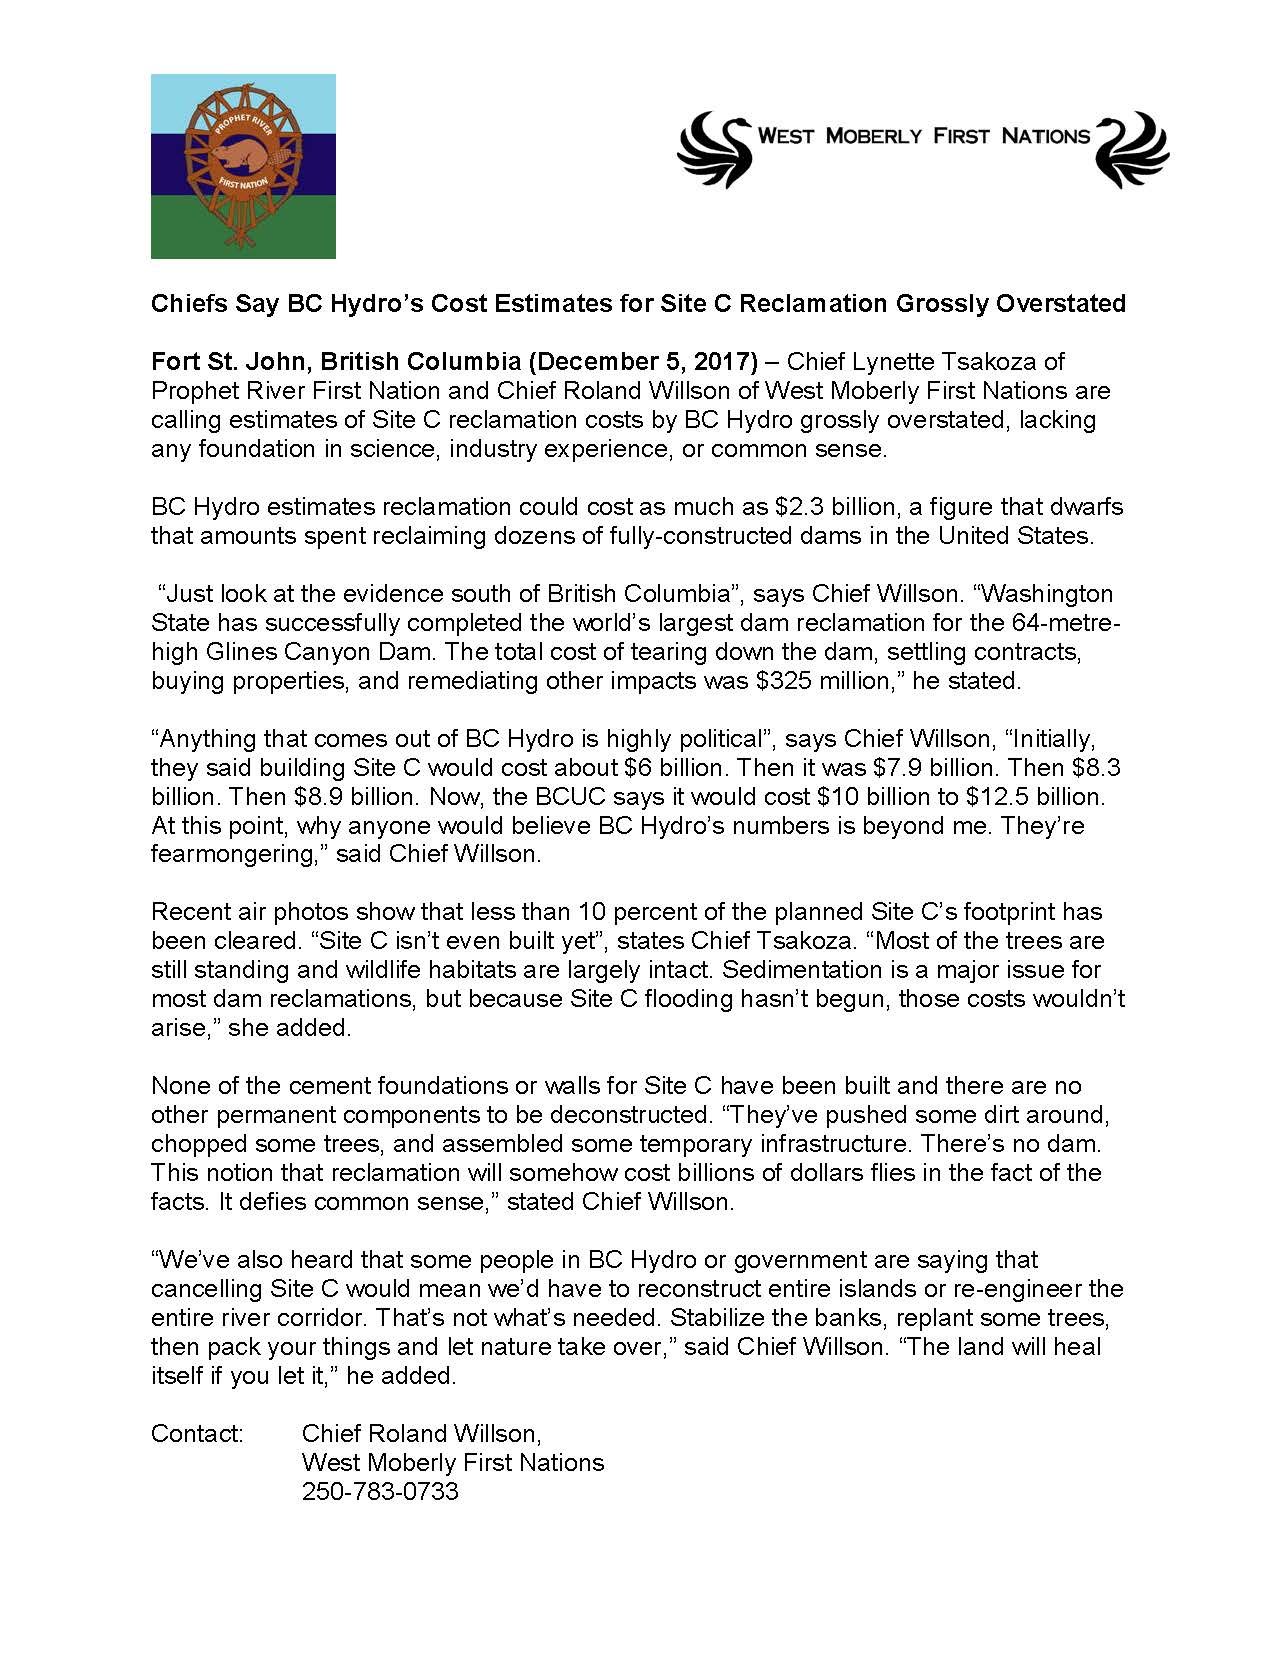 2017 12 04 PRESS RELEASE FNs Say Costs of Reclamation Grossly Overstated 4.0.jpg